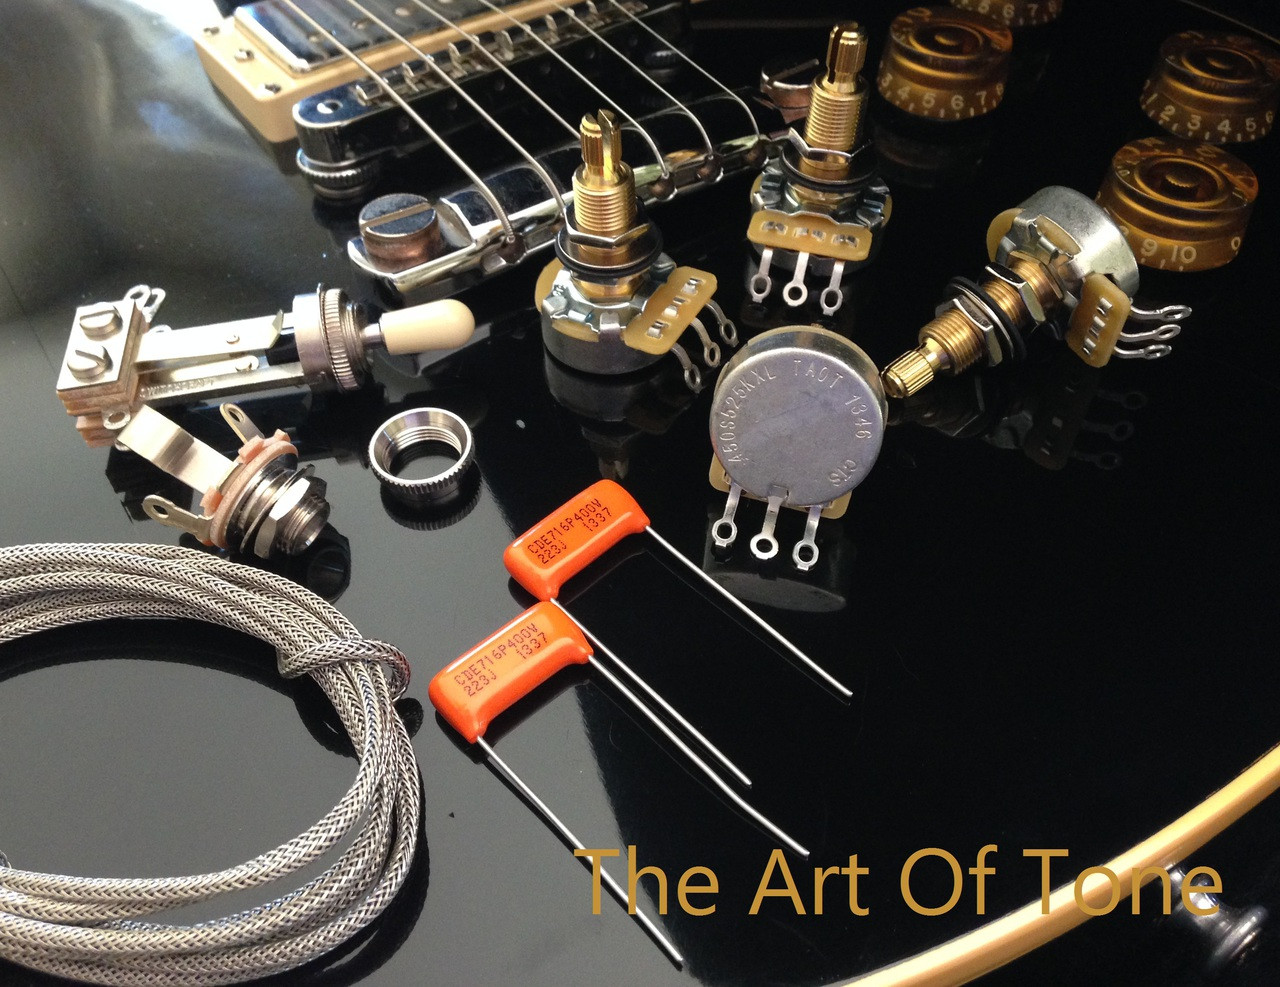 [SODI_2457]   Wiring Kit - Gibson Les Paul - Long Shaft - CTS TAOT 500KXL Pots- Orange  Drop Caps | Details About Wiring Harness For Les Paul Cts Pots |  | The Art Of Tone